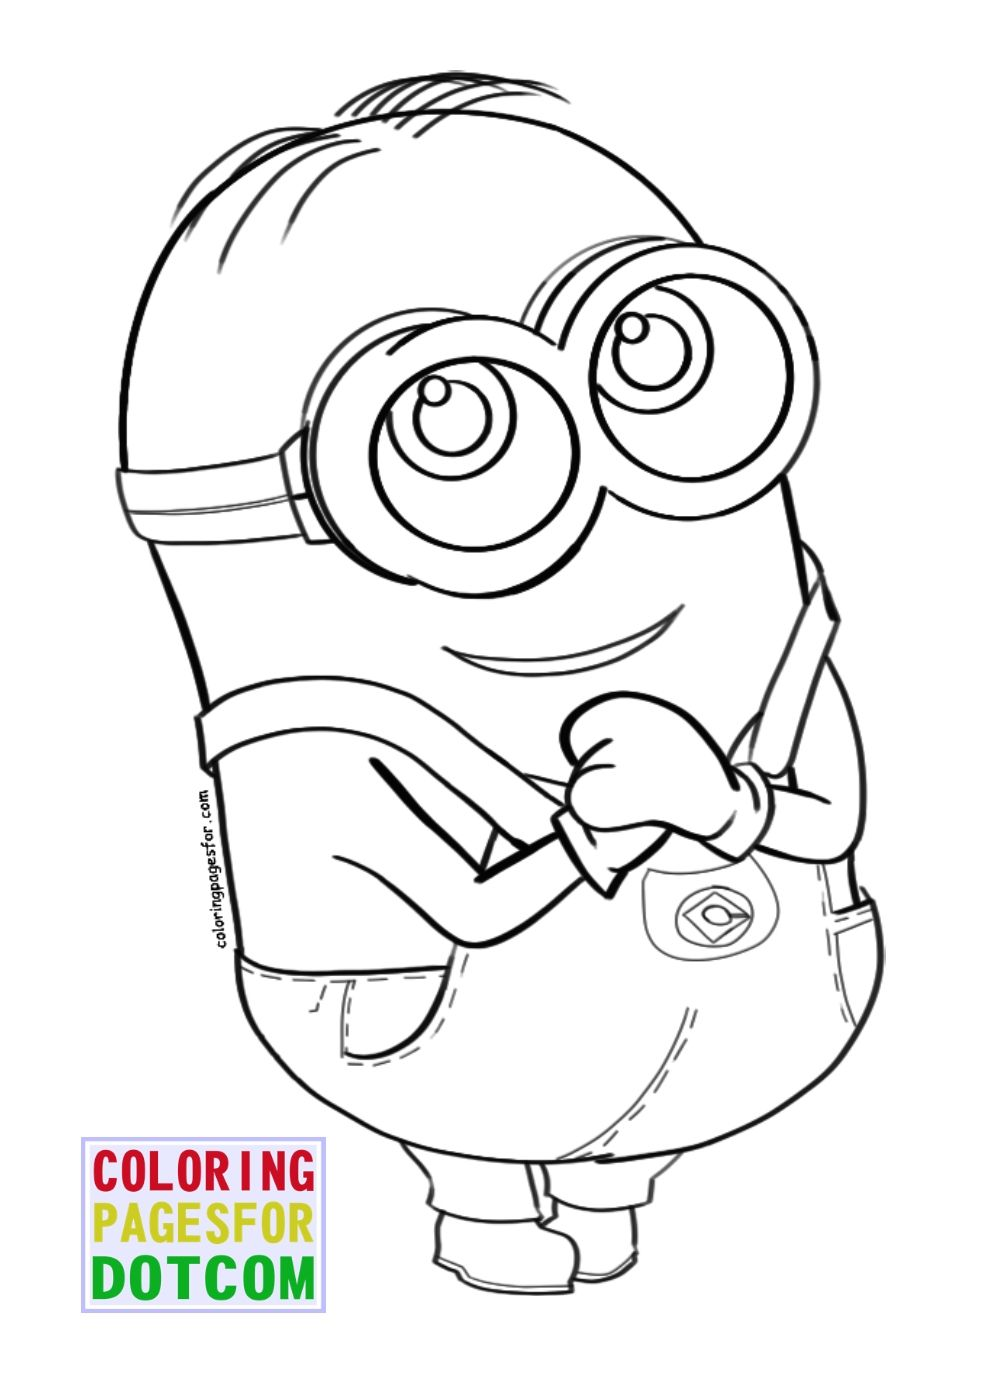 photo regarding Minion Printable Coloring Pages named free of charge printable minion coloring internet pages 06 minions Minion